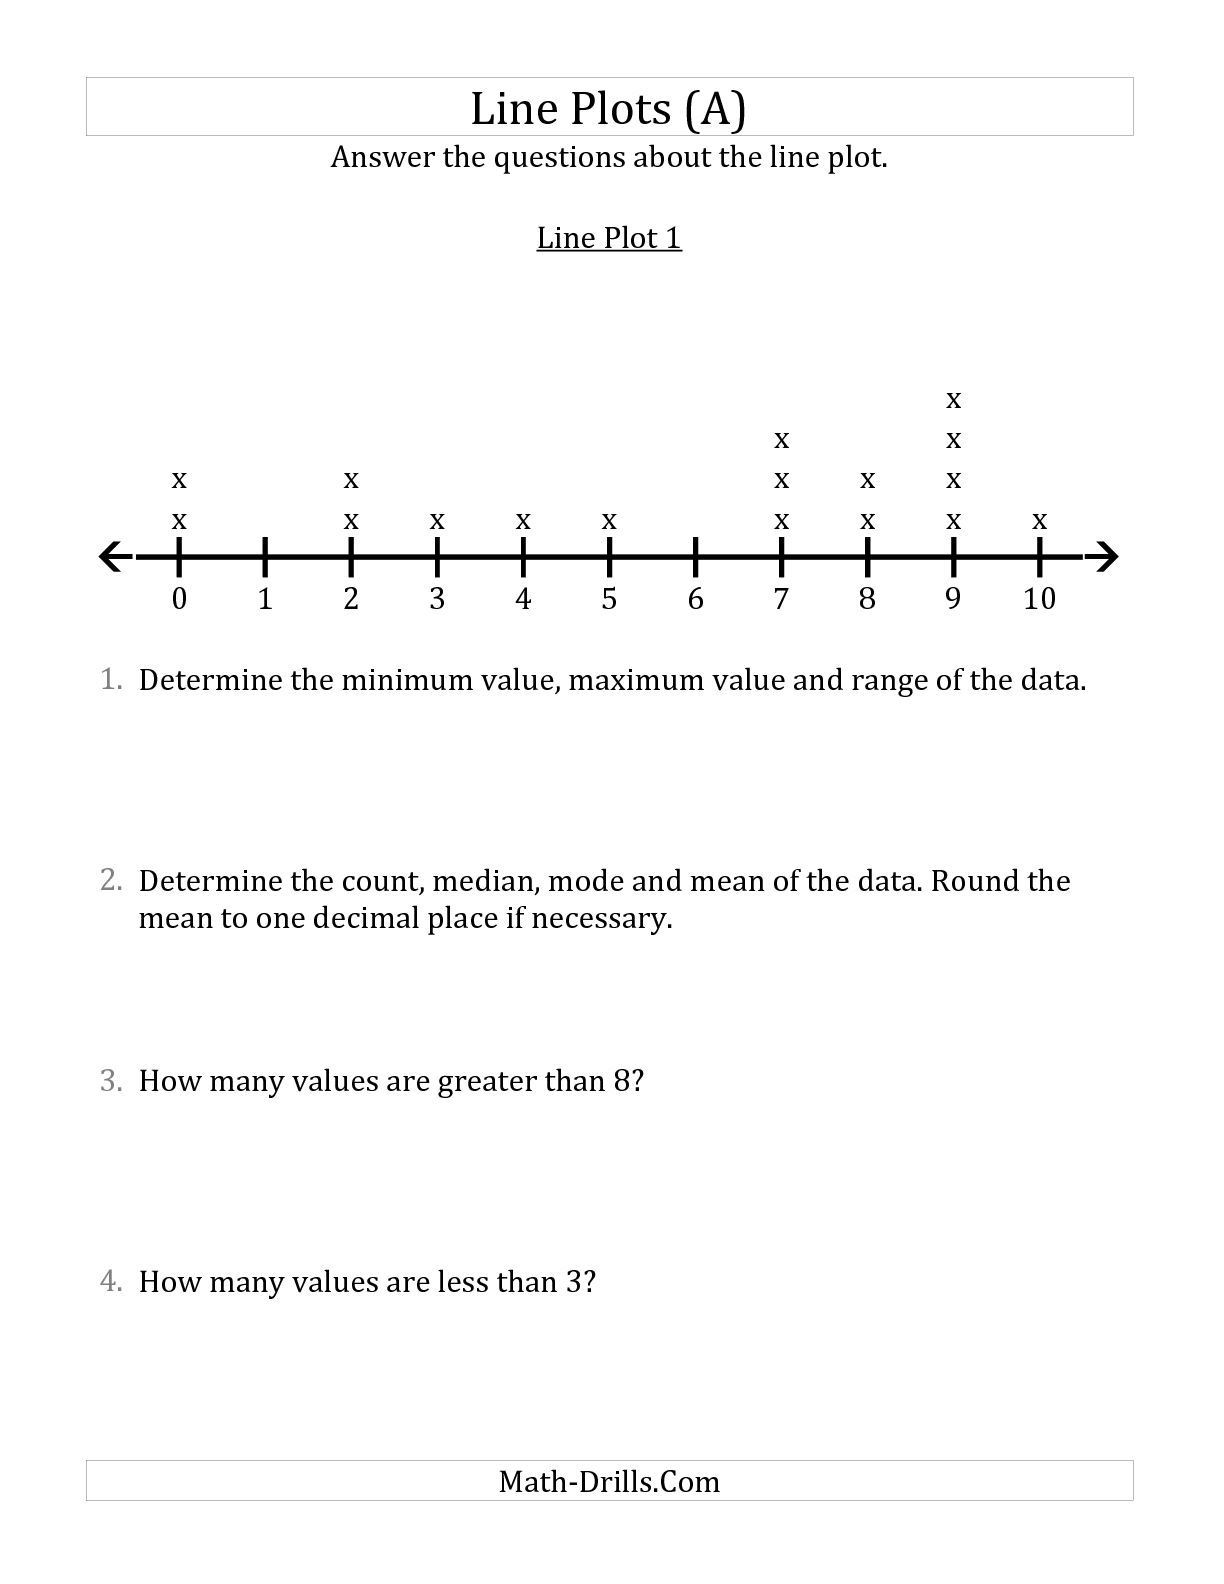 Line Plots 5th Grade Worksheets the Questions About Line Plots with Smaller Data Sets and